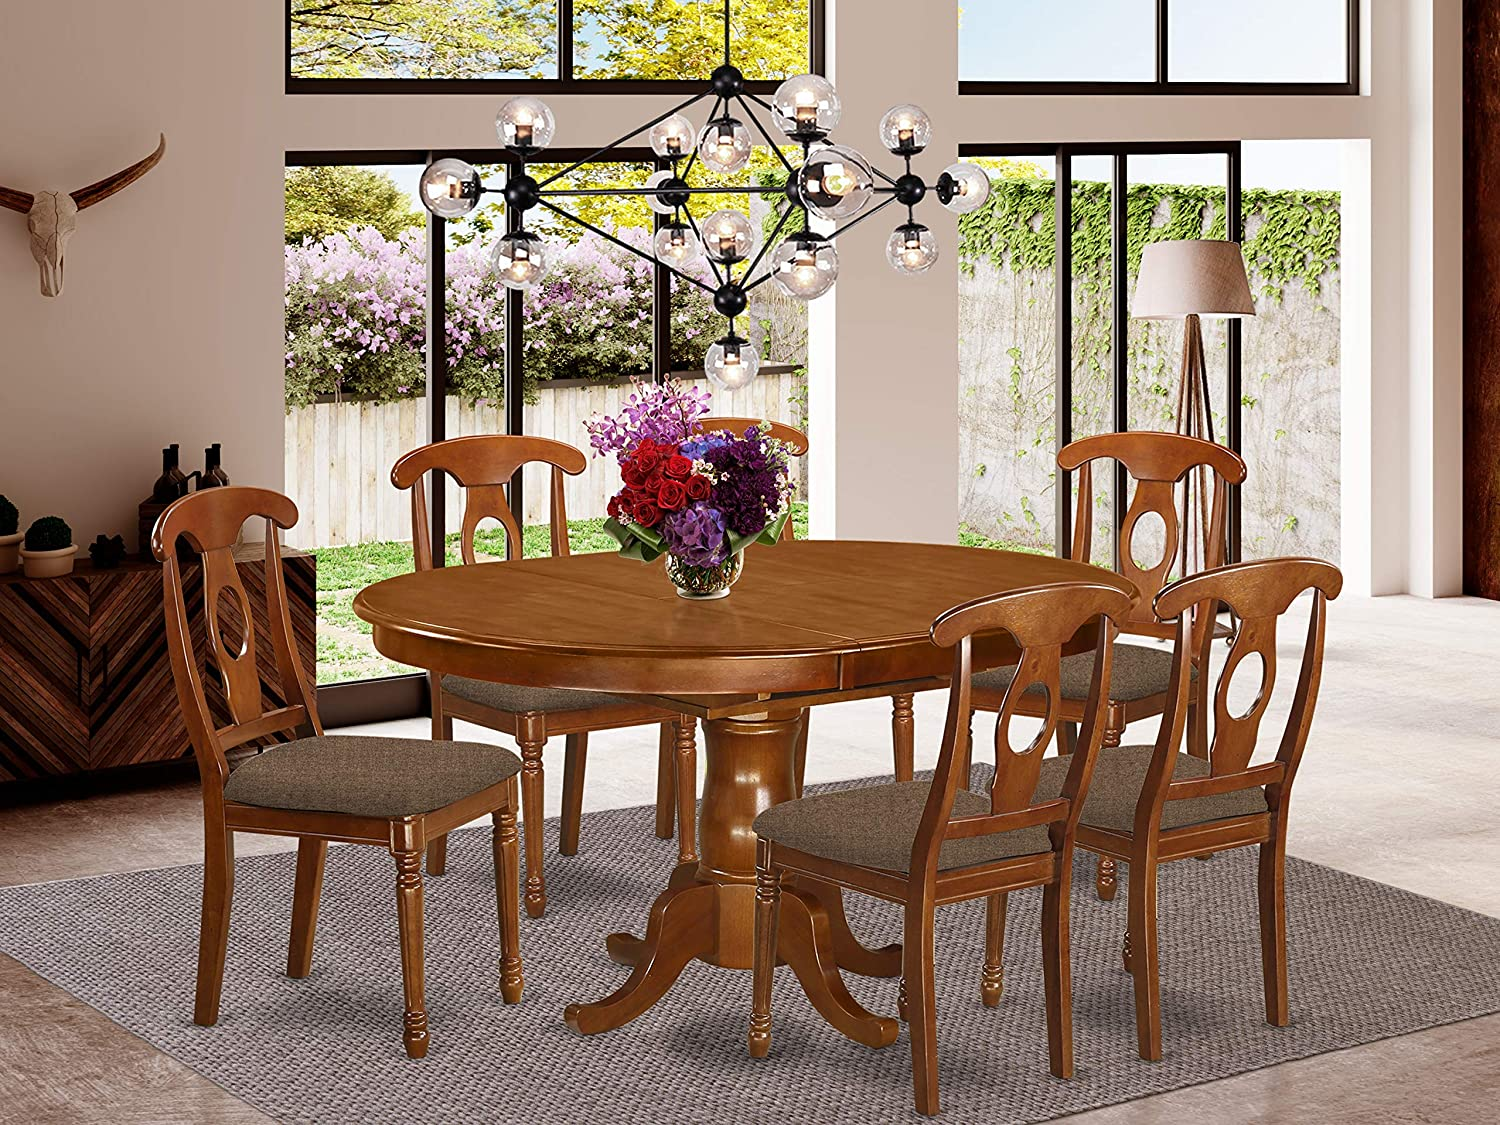 Buy 9 Pc Dining room set and Oval Dining Table with Leaf and 9 ...